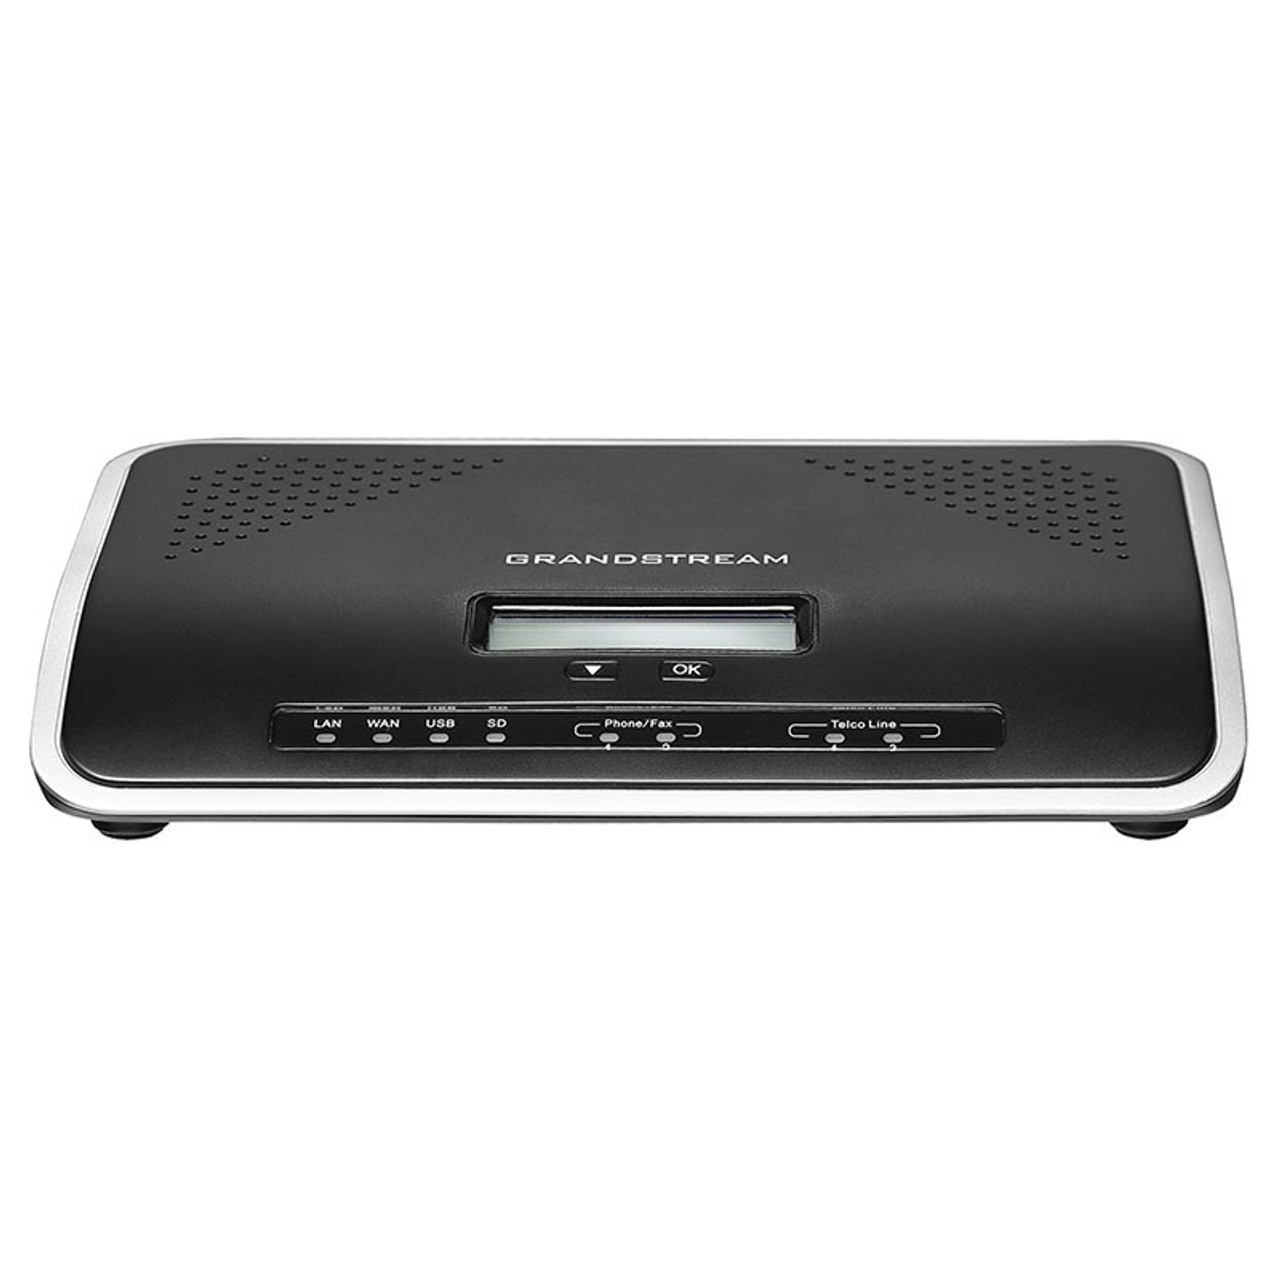 Image for Grandstream UCM6202 IP PBX Appliance with NAT Router CX Computer Superstore